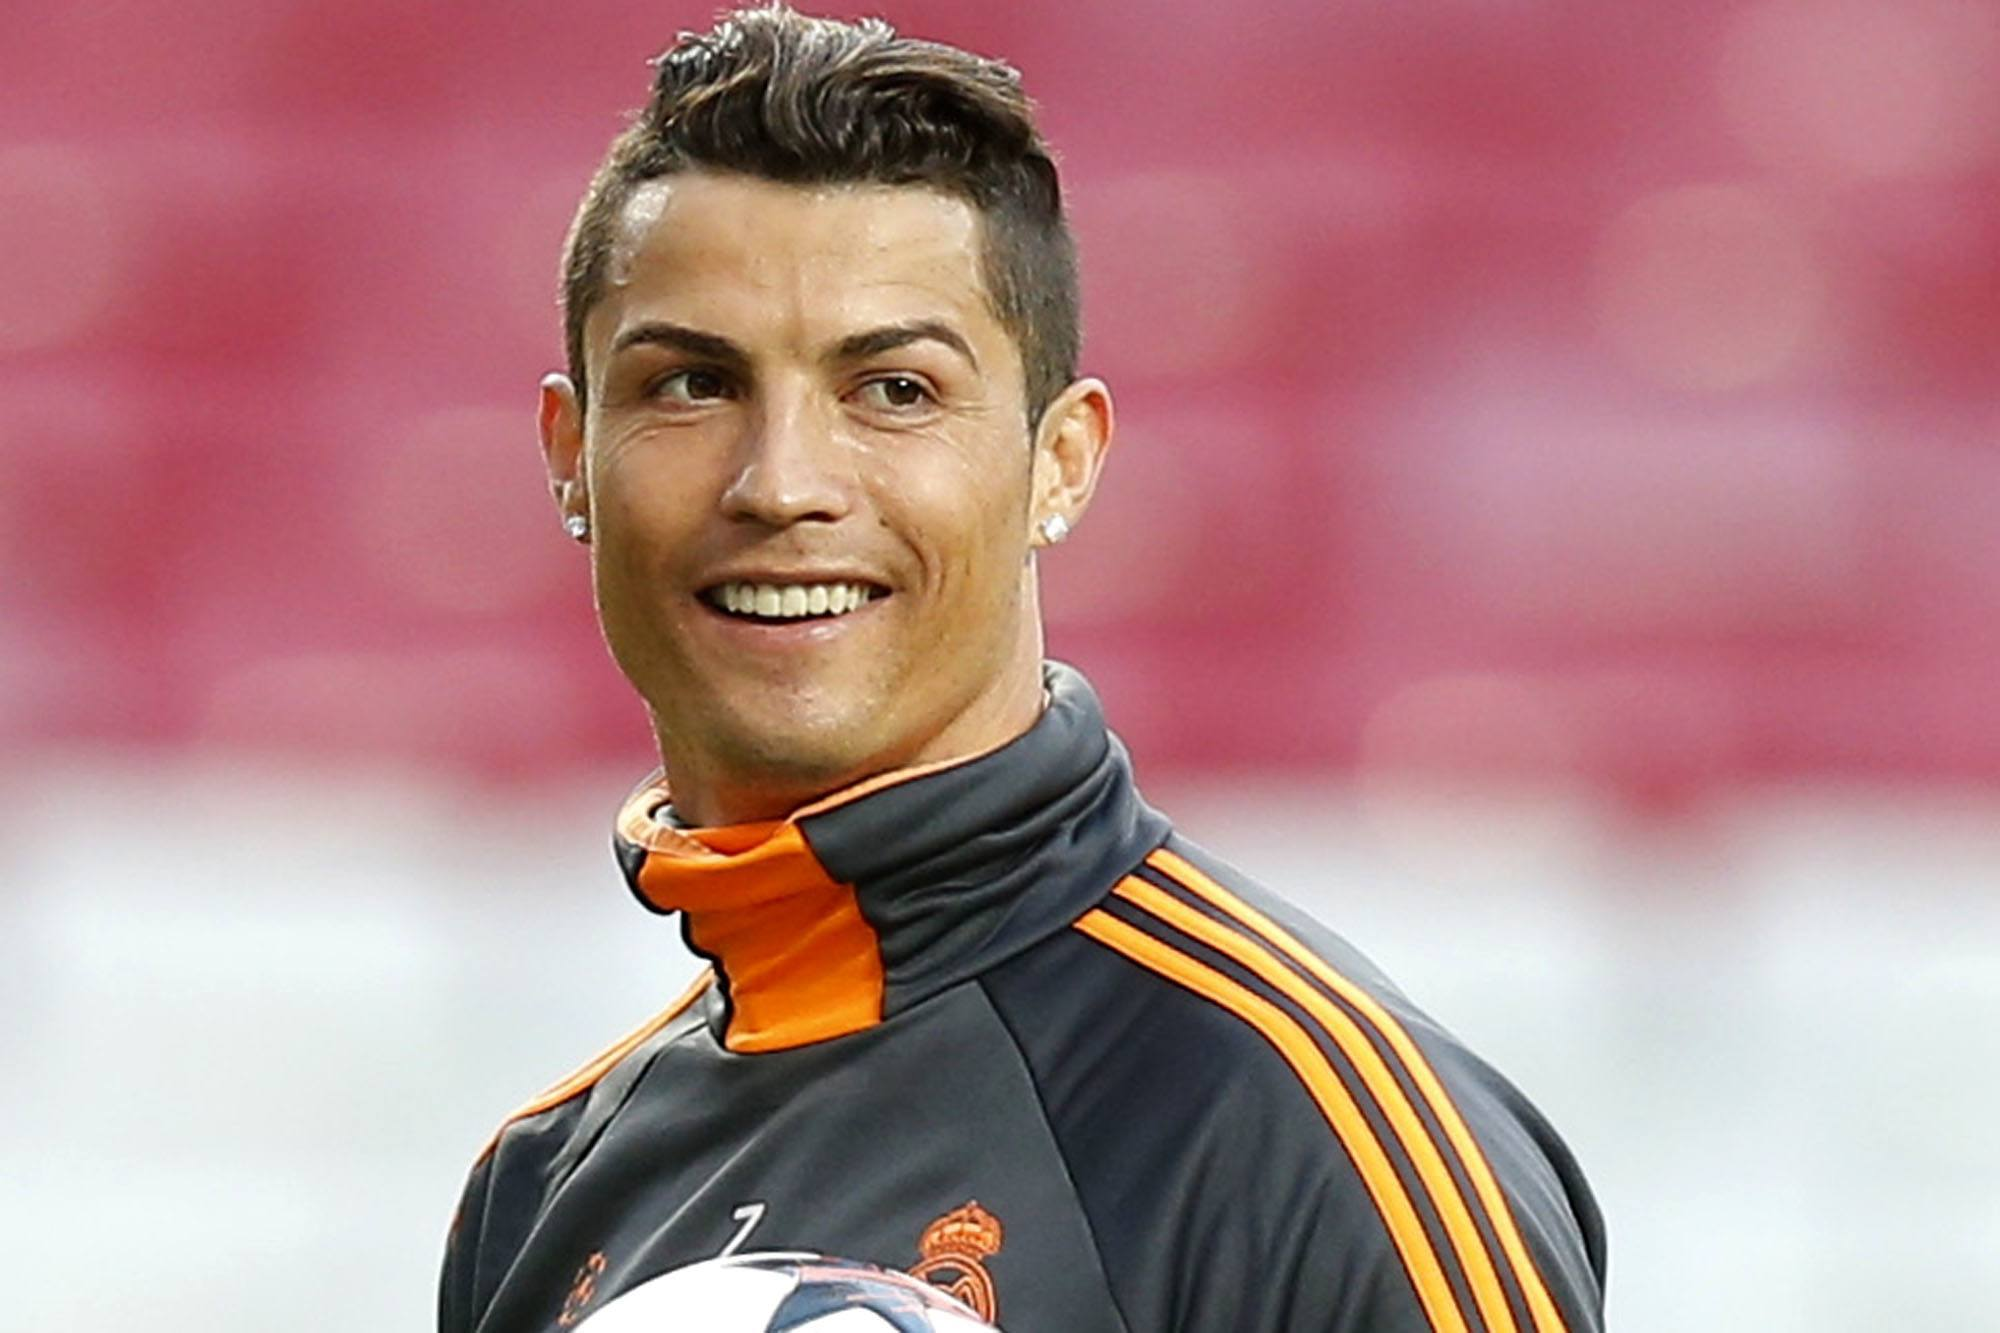 Cristiano Ronaldo Hairstyles Most Popular Hair Cuts Pics - New hairstyle cristiano ronaldo 2014